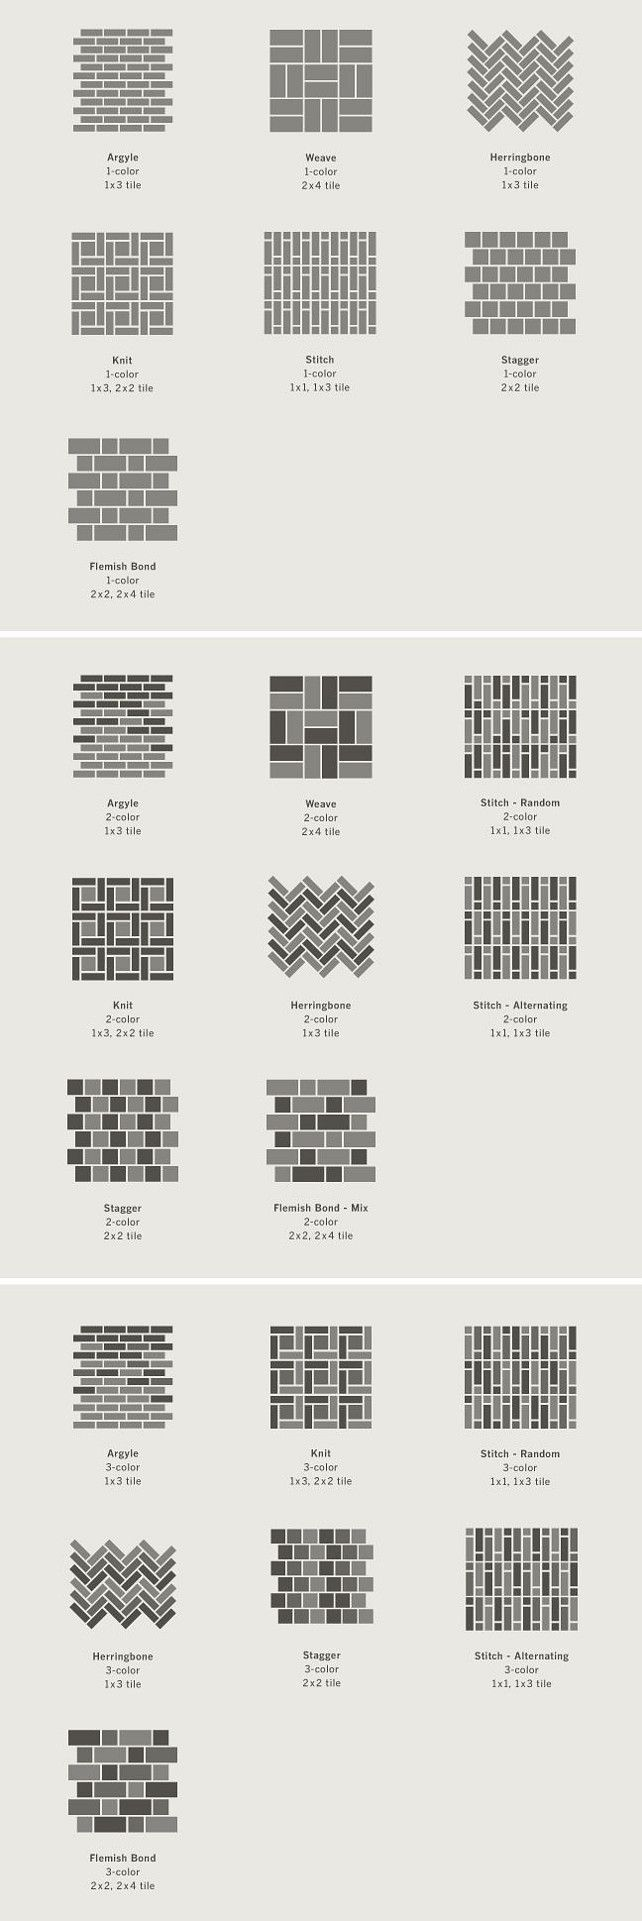 tiling layout patterns tile layout tiling layout ideas great ideas for backsplash or - Ubahnaufkantung Grau